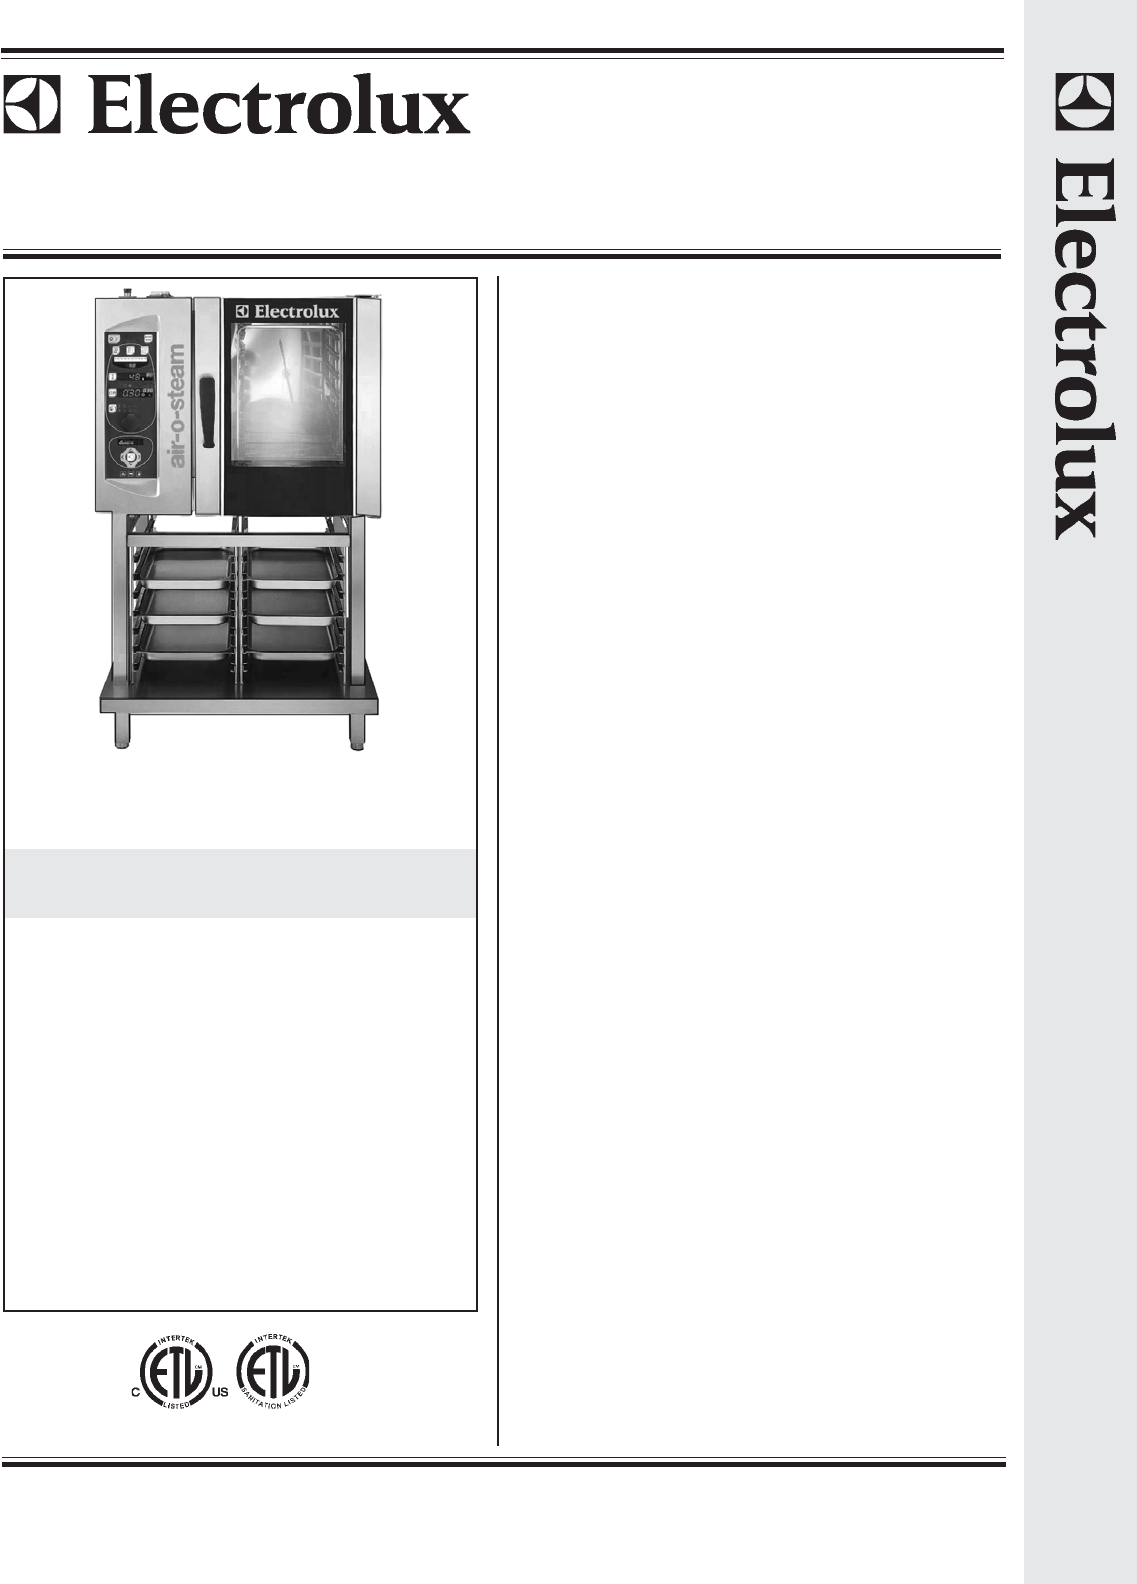 electrolux microwave oven aos061gap1 user guide manualsonline com rh kitchen manualsonline com Hamilton Beach Microwave electrolux microwave user manual